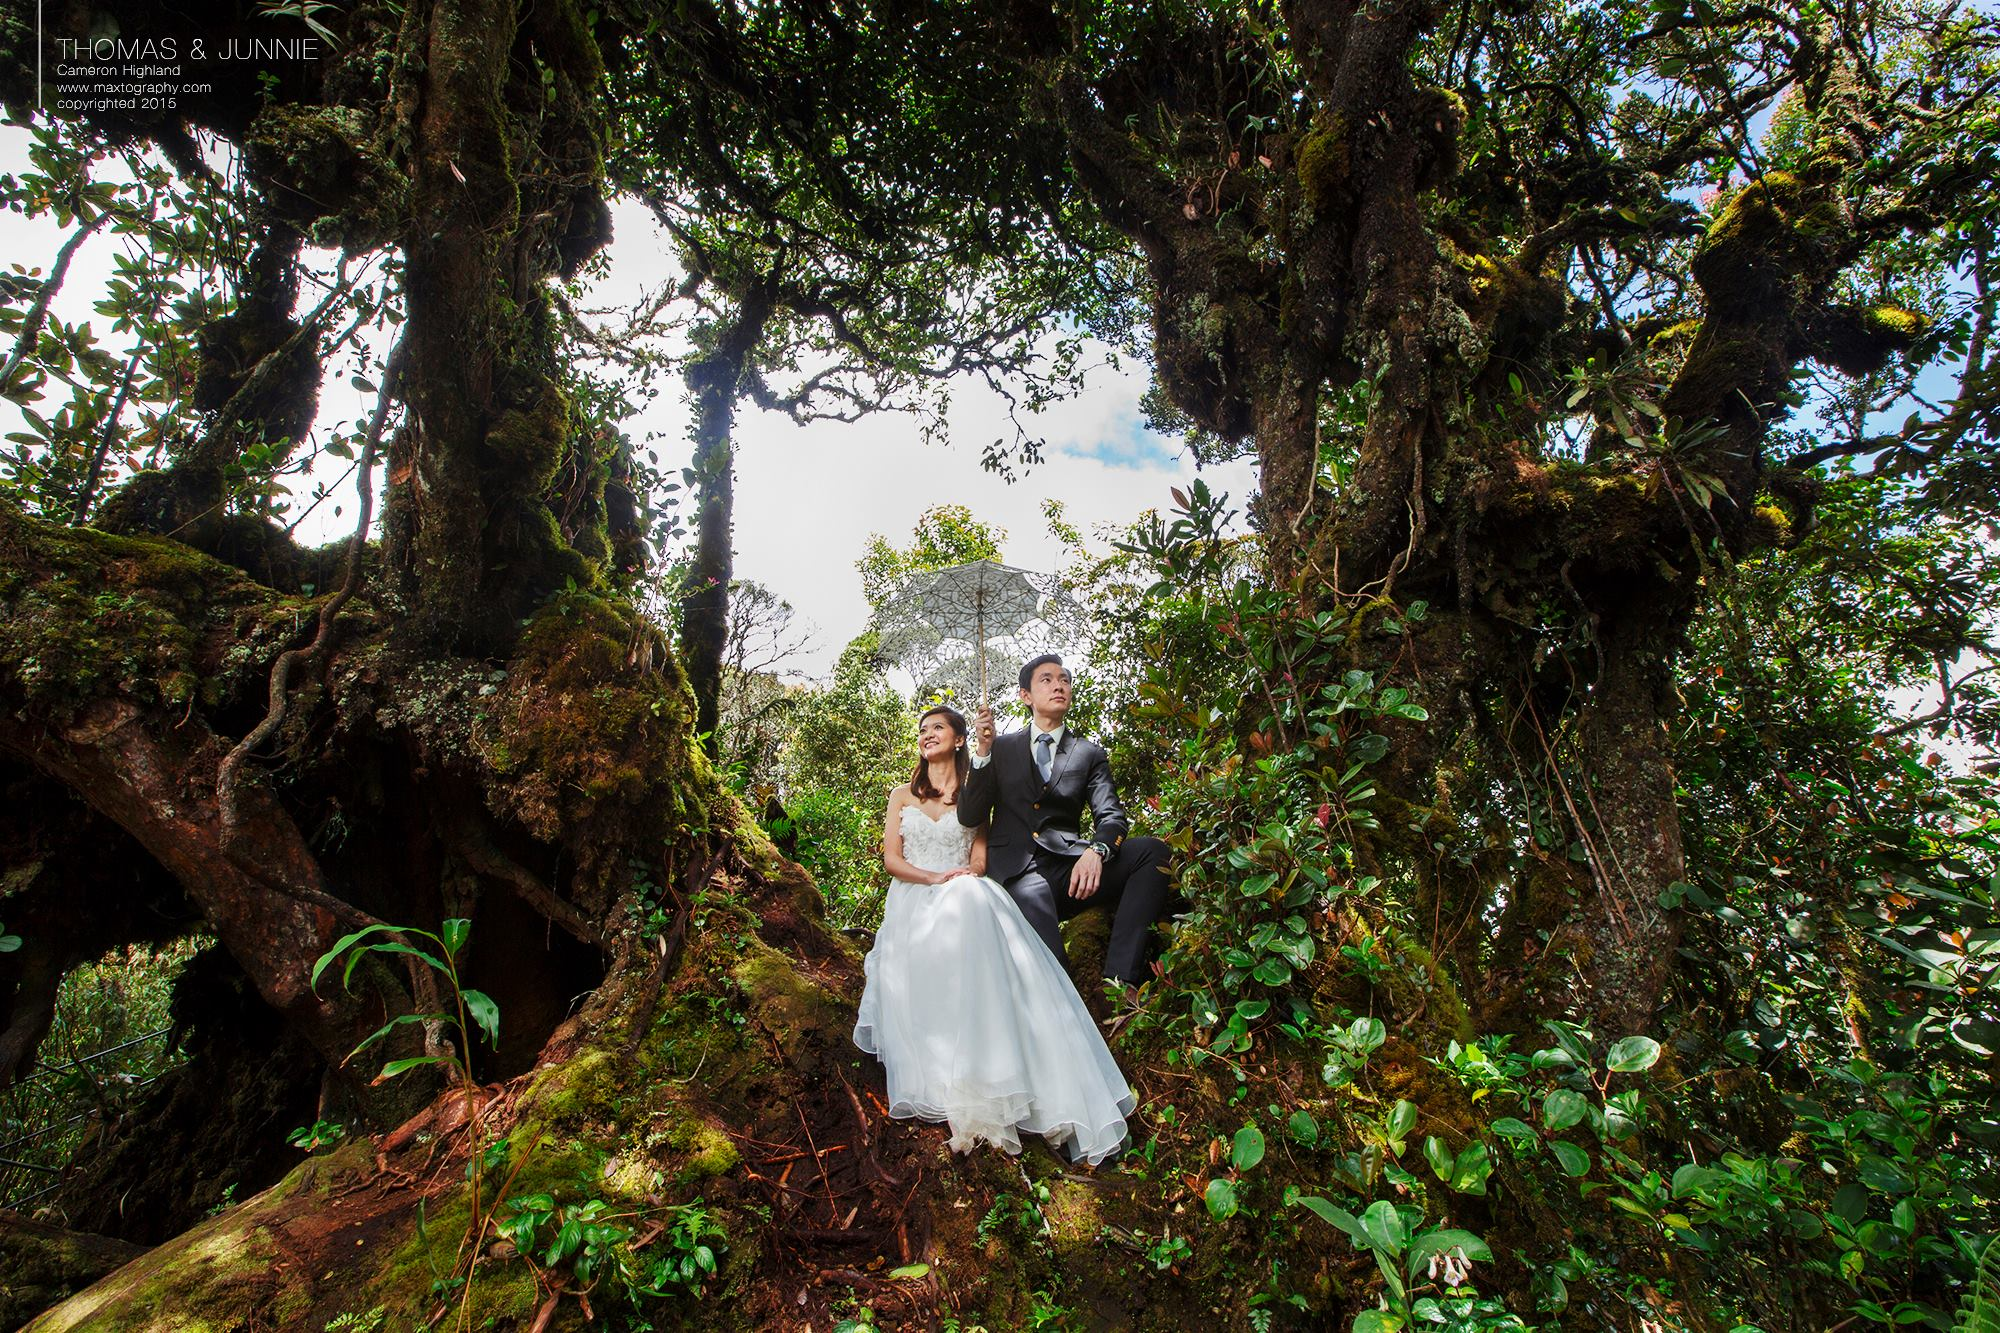 Couple poses at Mossy Forest Cameron Highland